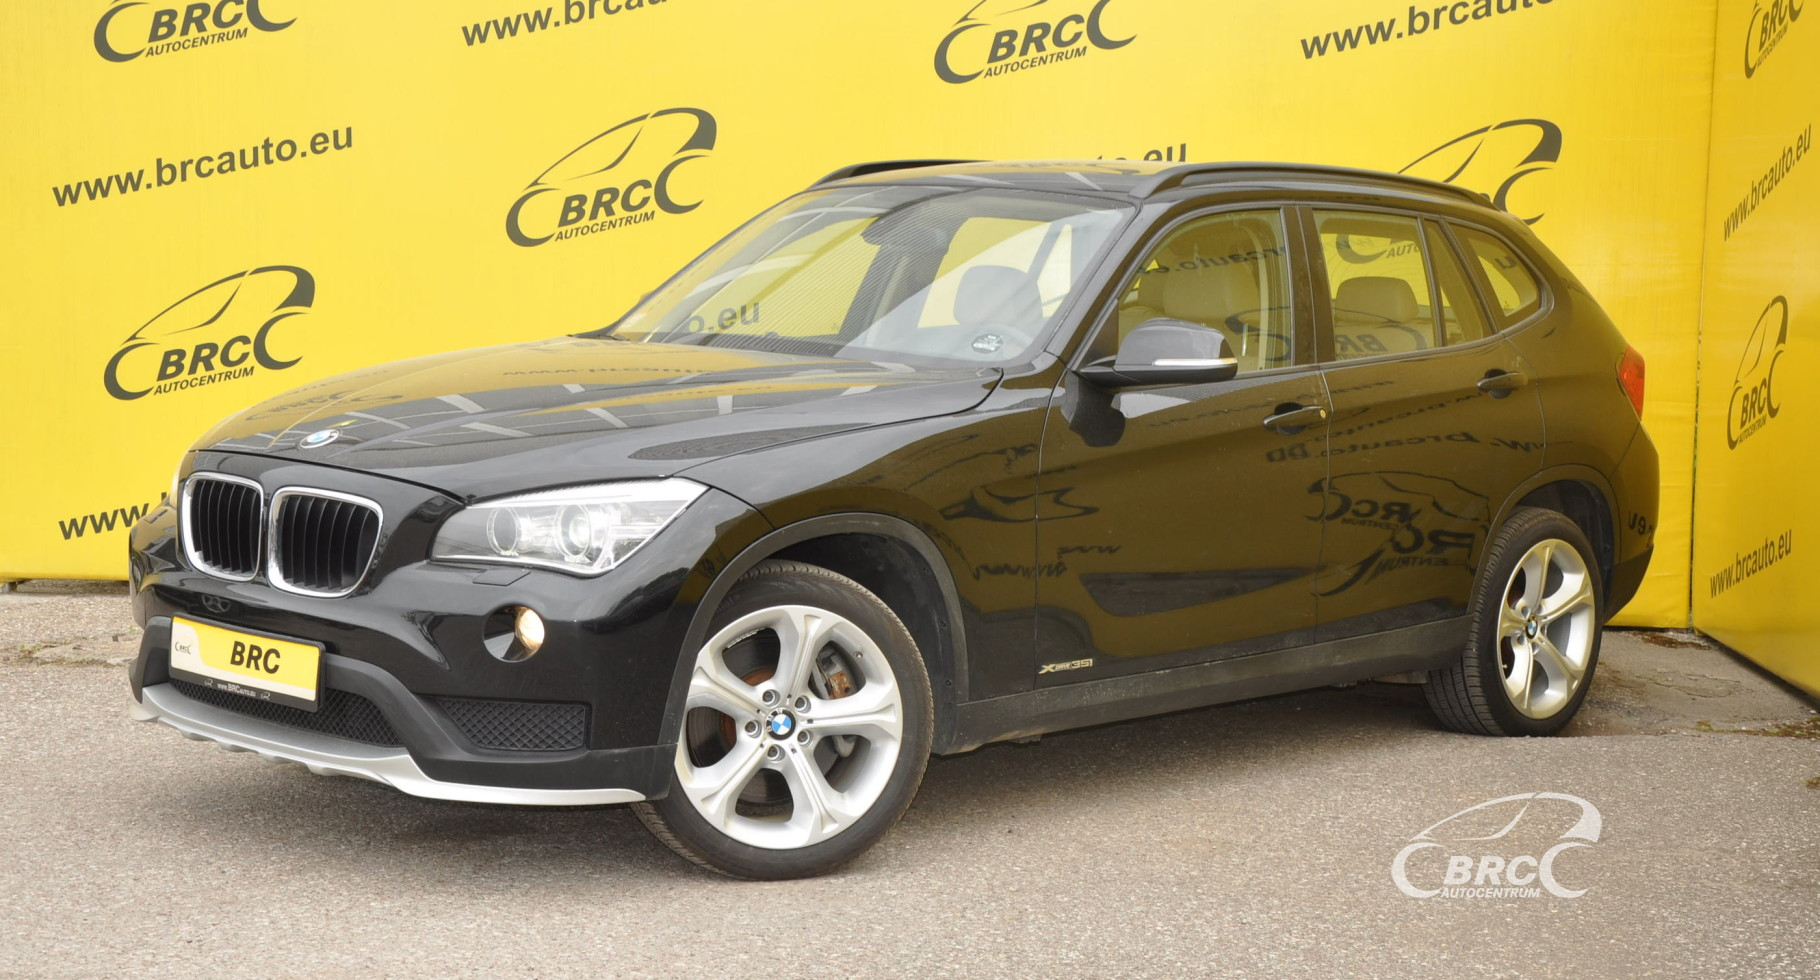 bmw x1 xdrive 35i automatas id 789739 brc autocentrum. Black Bedroom Furniture Sets. Home Design Ideas